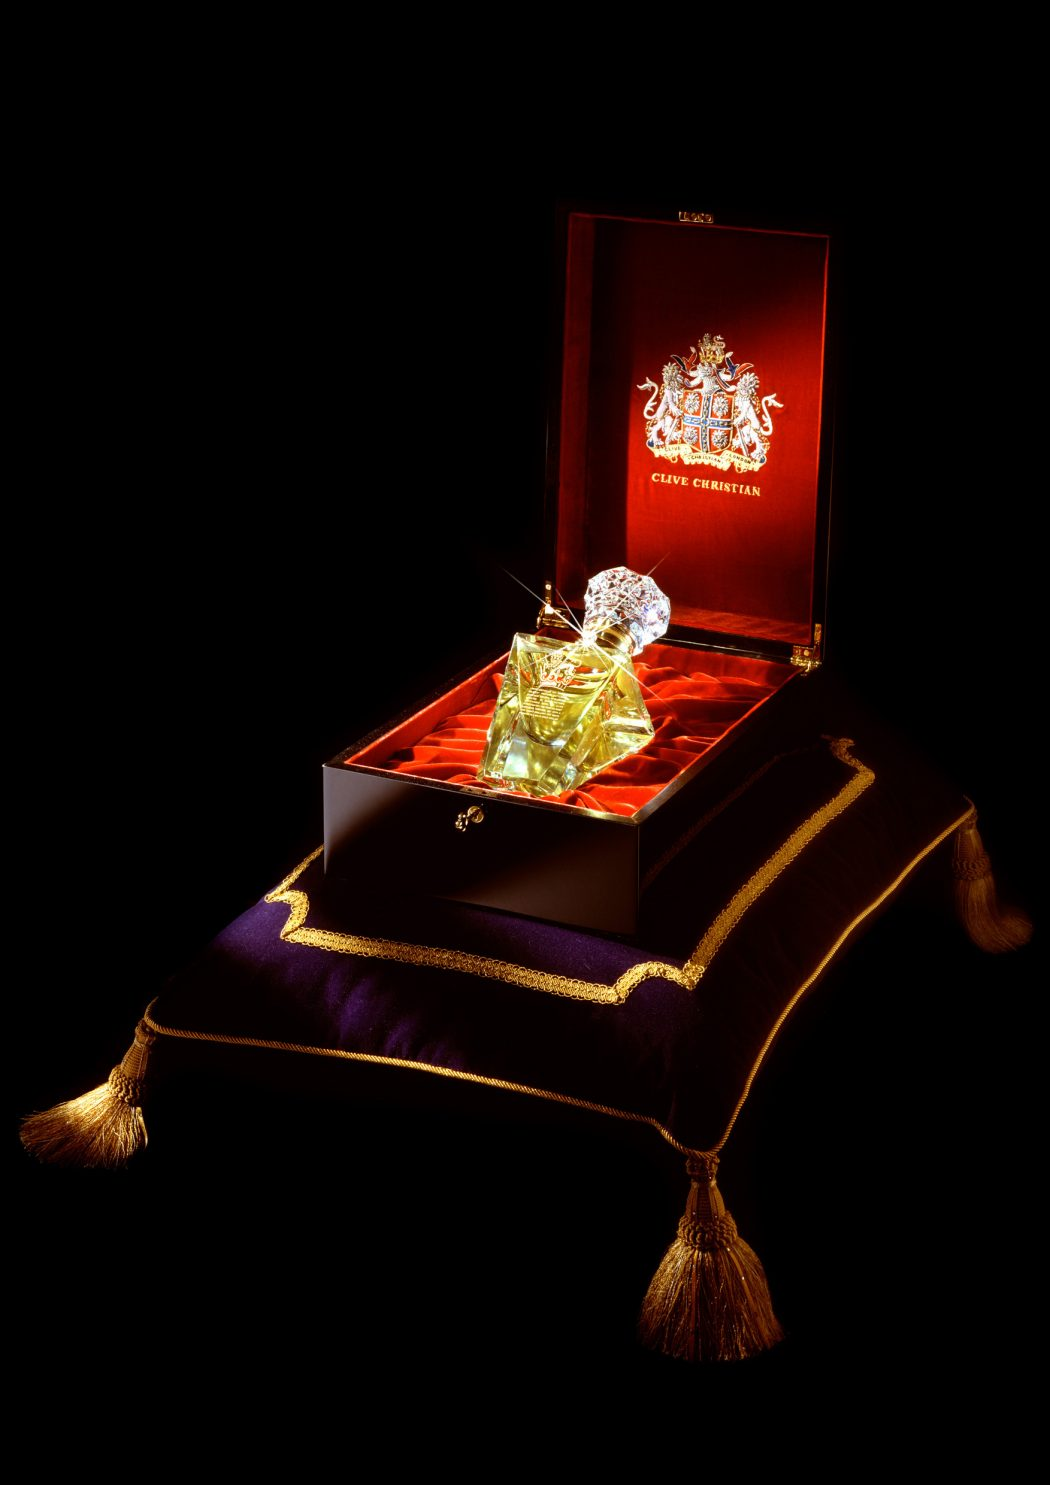 clive-christian-no-1-perfume-imperial-majesty-edition-in-box 10 Most Expensive Perfumes for Men in The World